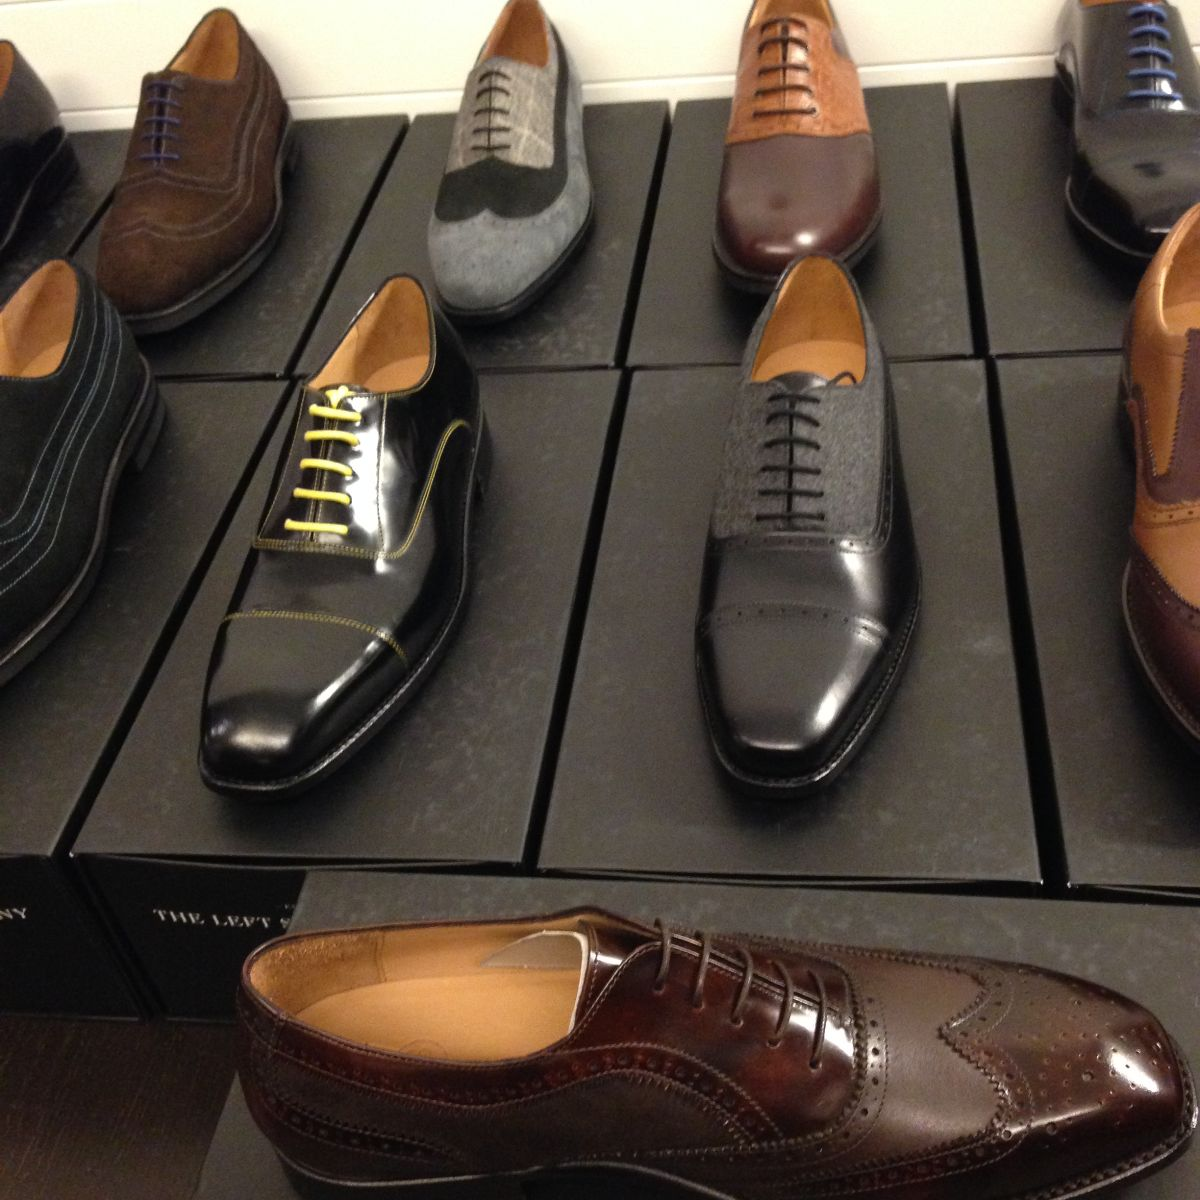 Mens shoes, the left shoe company, currently crushing